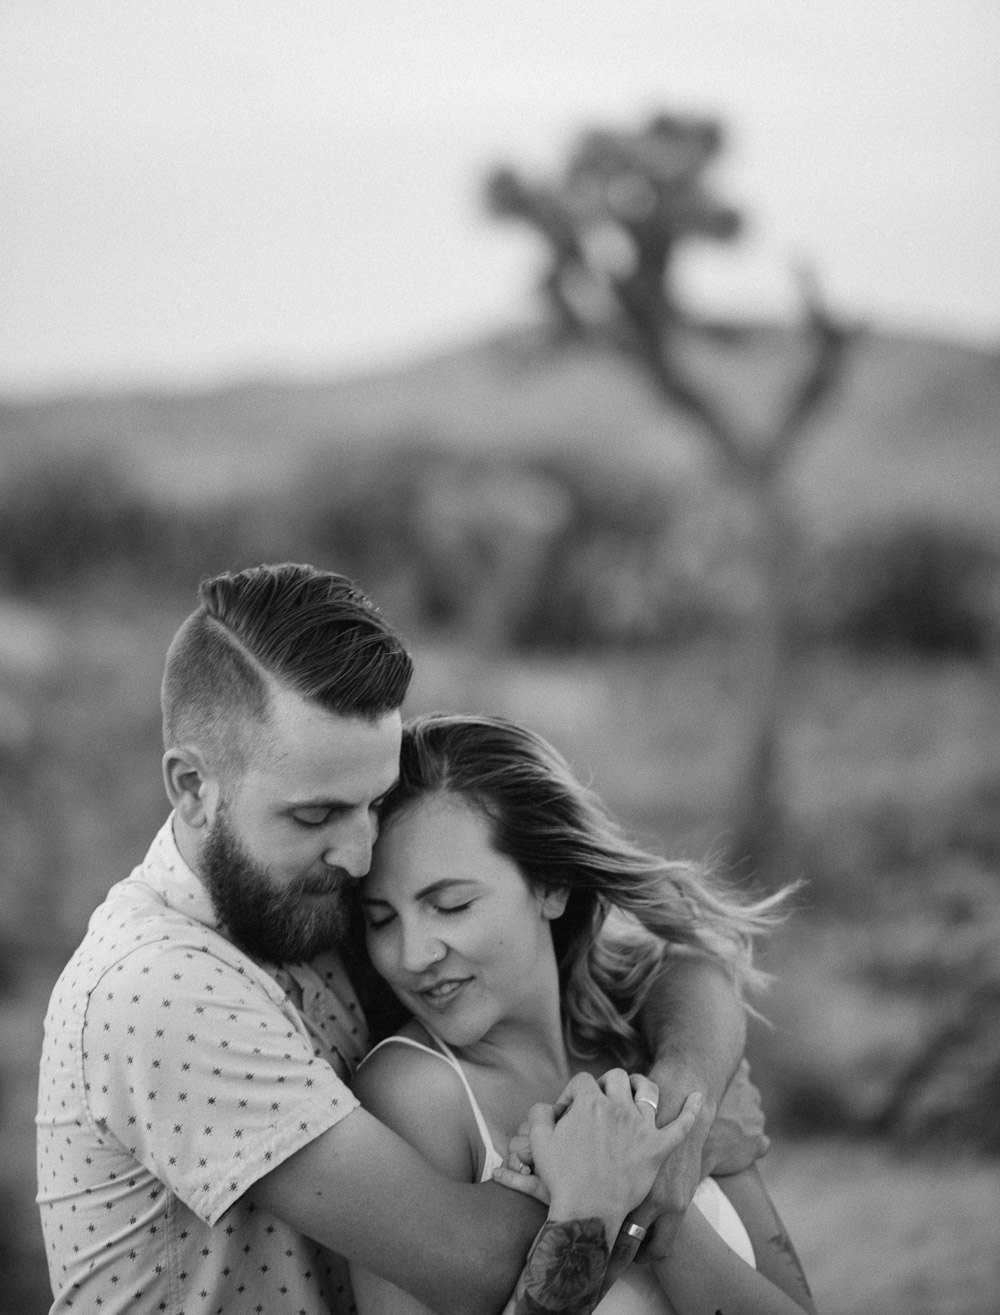 fine-art-couple-photography Epic Adventure Destination Engagement Session | Joshua Tree, CA